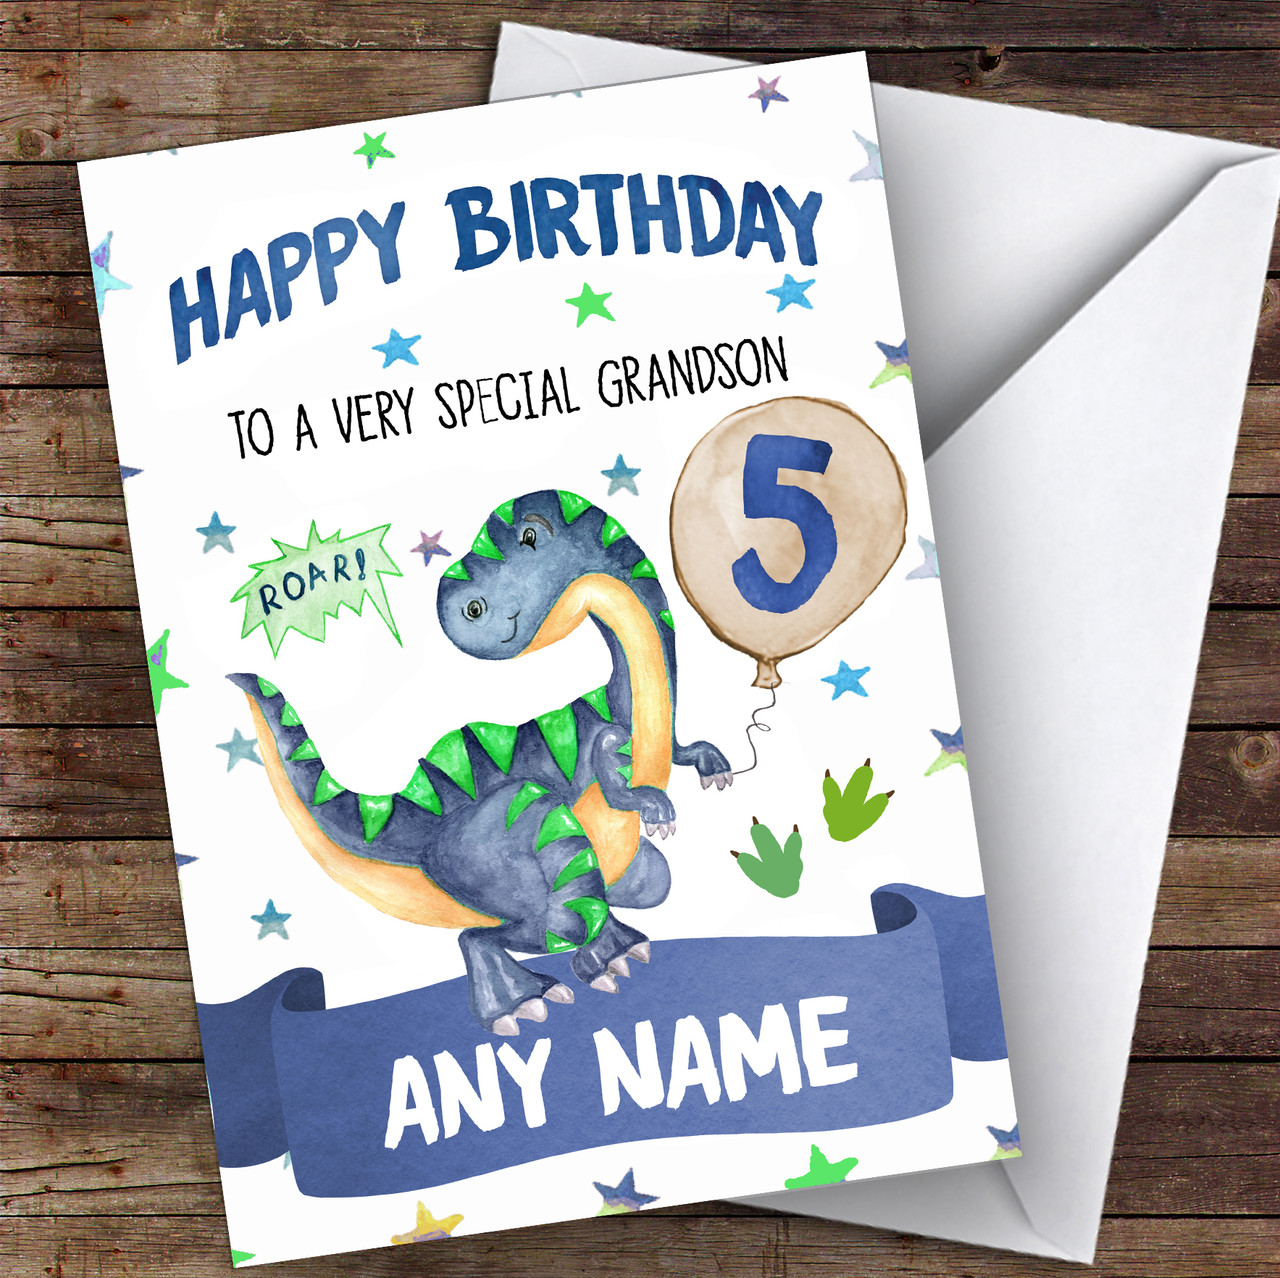 Kids Child Happy BIRTHDAY CARDS ~ AGES 1st 2nd 3rd 4th 5th 6th 7th 8th 9th 10th